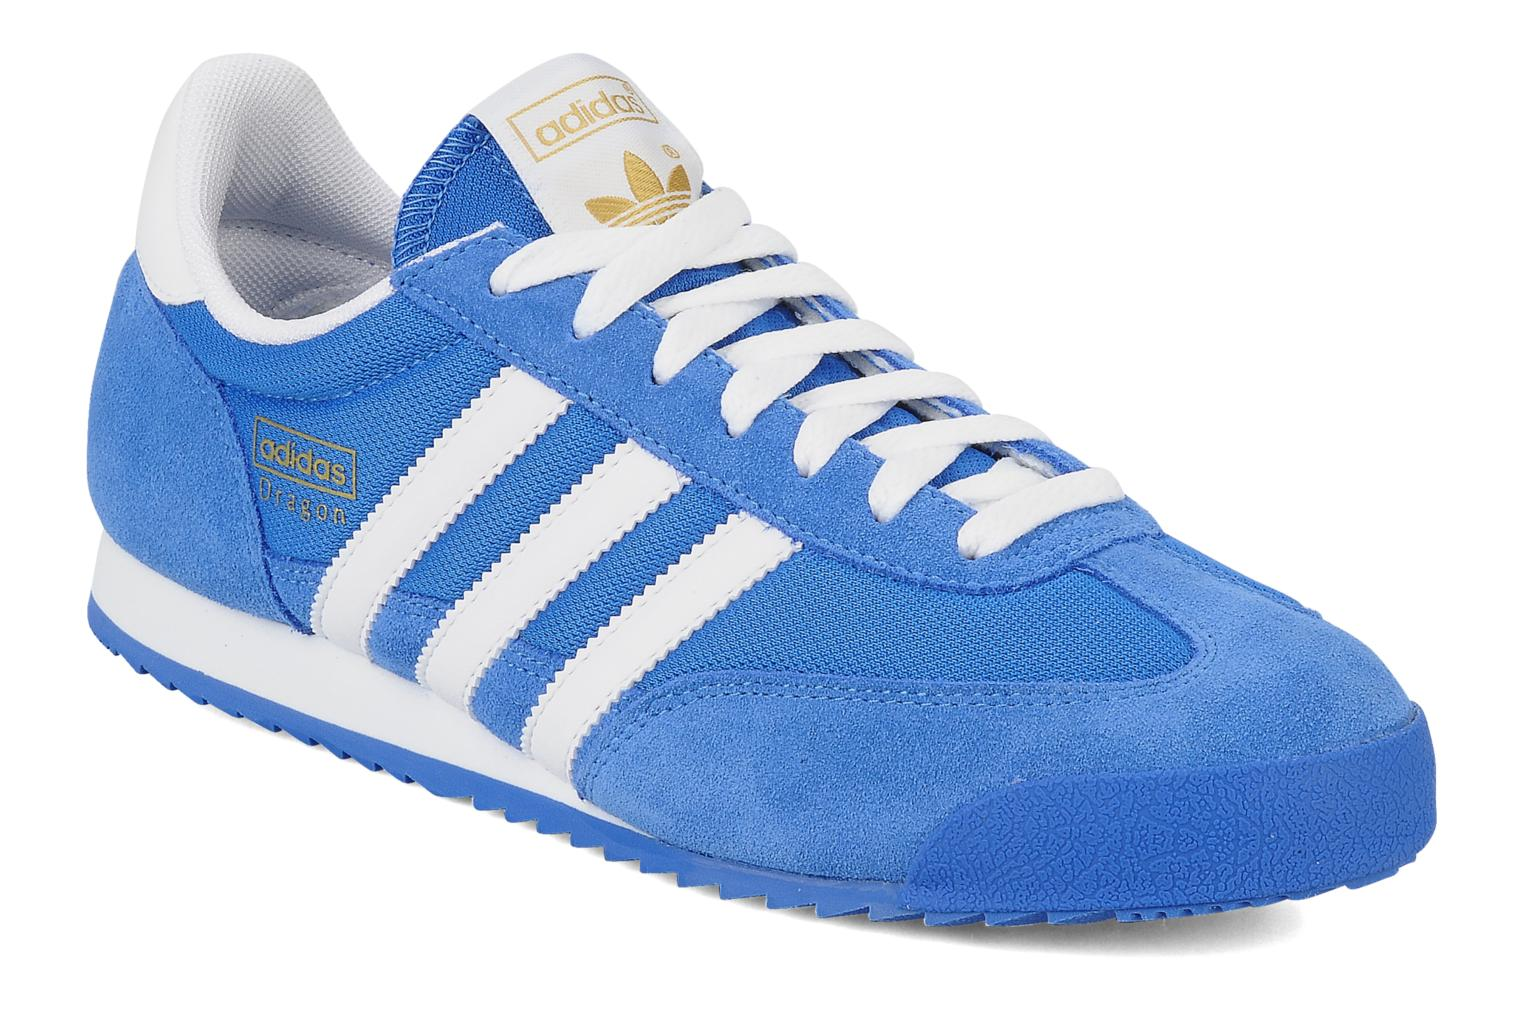 zapatillas adidas dragon azules